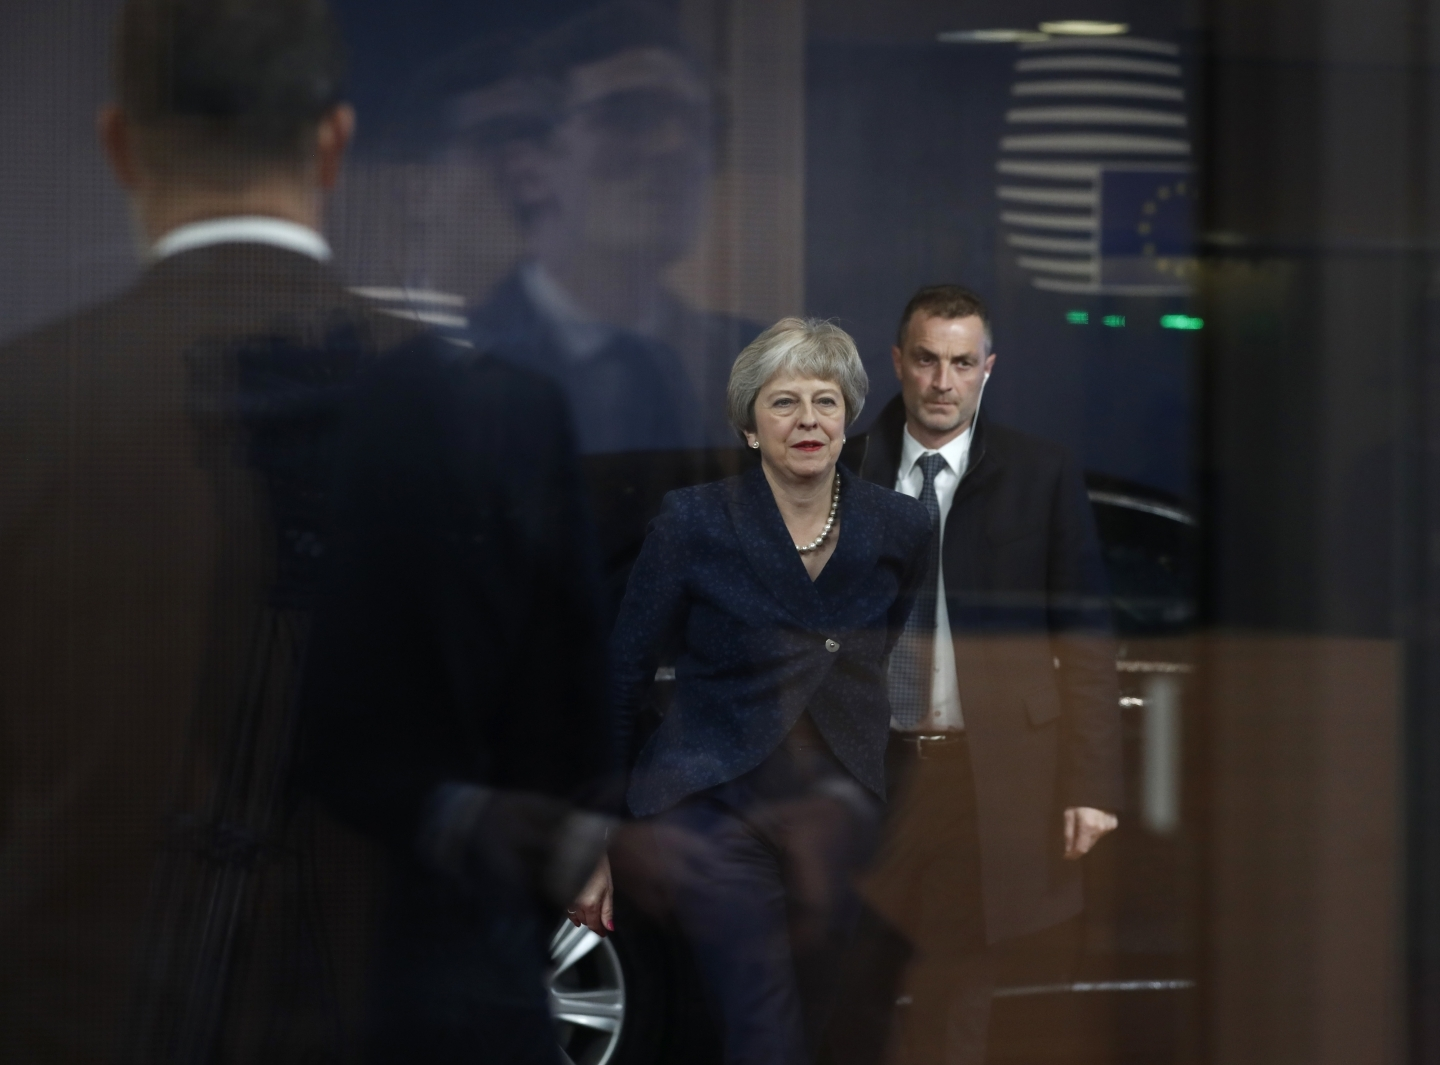 British Prime Minister Theresa May arrives for a meeting with European Council President Donald Tusk on November 24, 2018. (AP Photo/Alastair Grant)